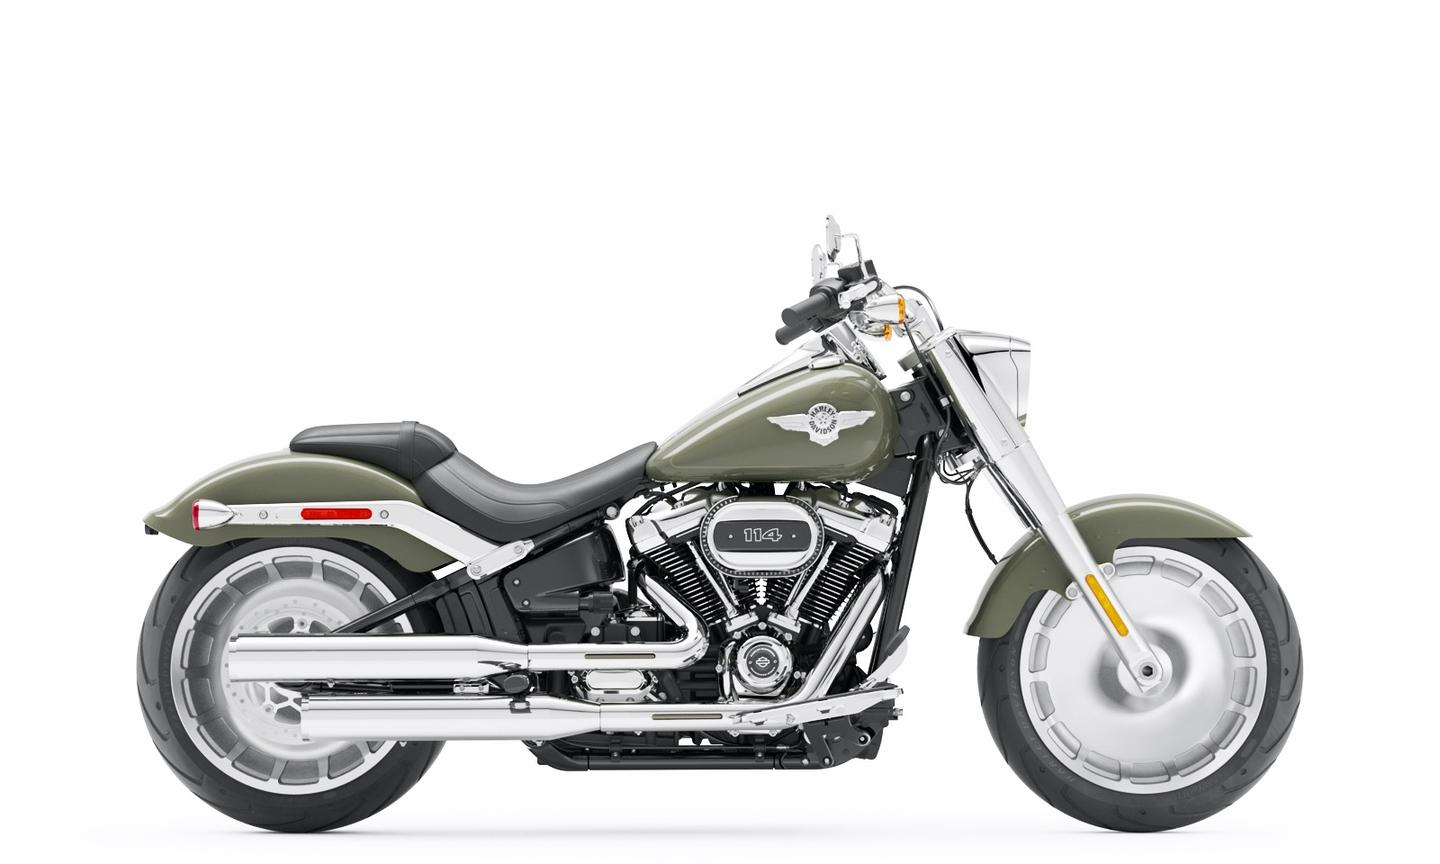 The 2021 Harley-Davidson Fat Boy gets refreshed styling with more chrome